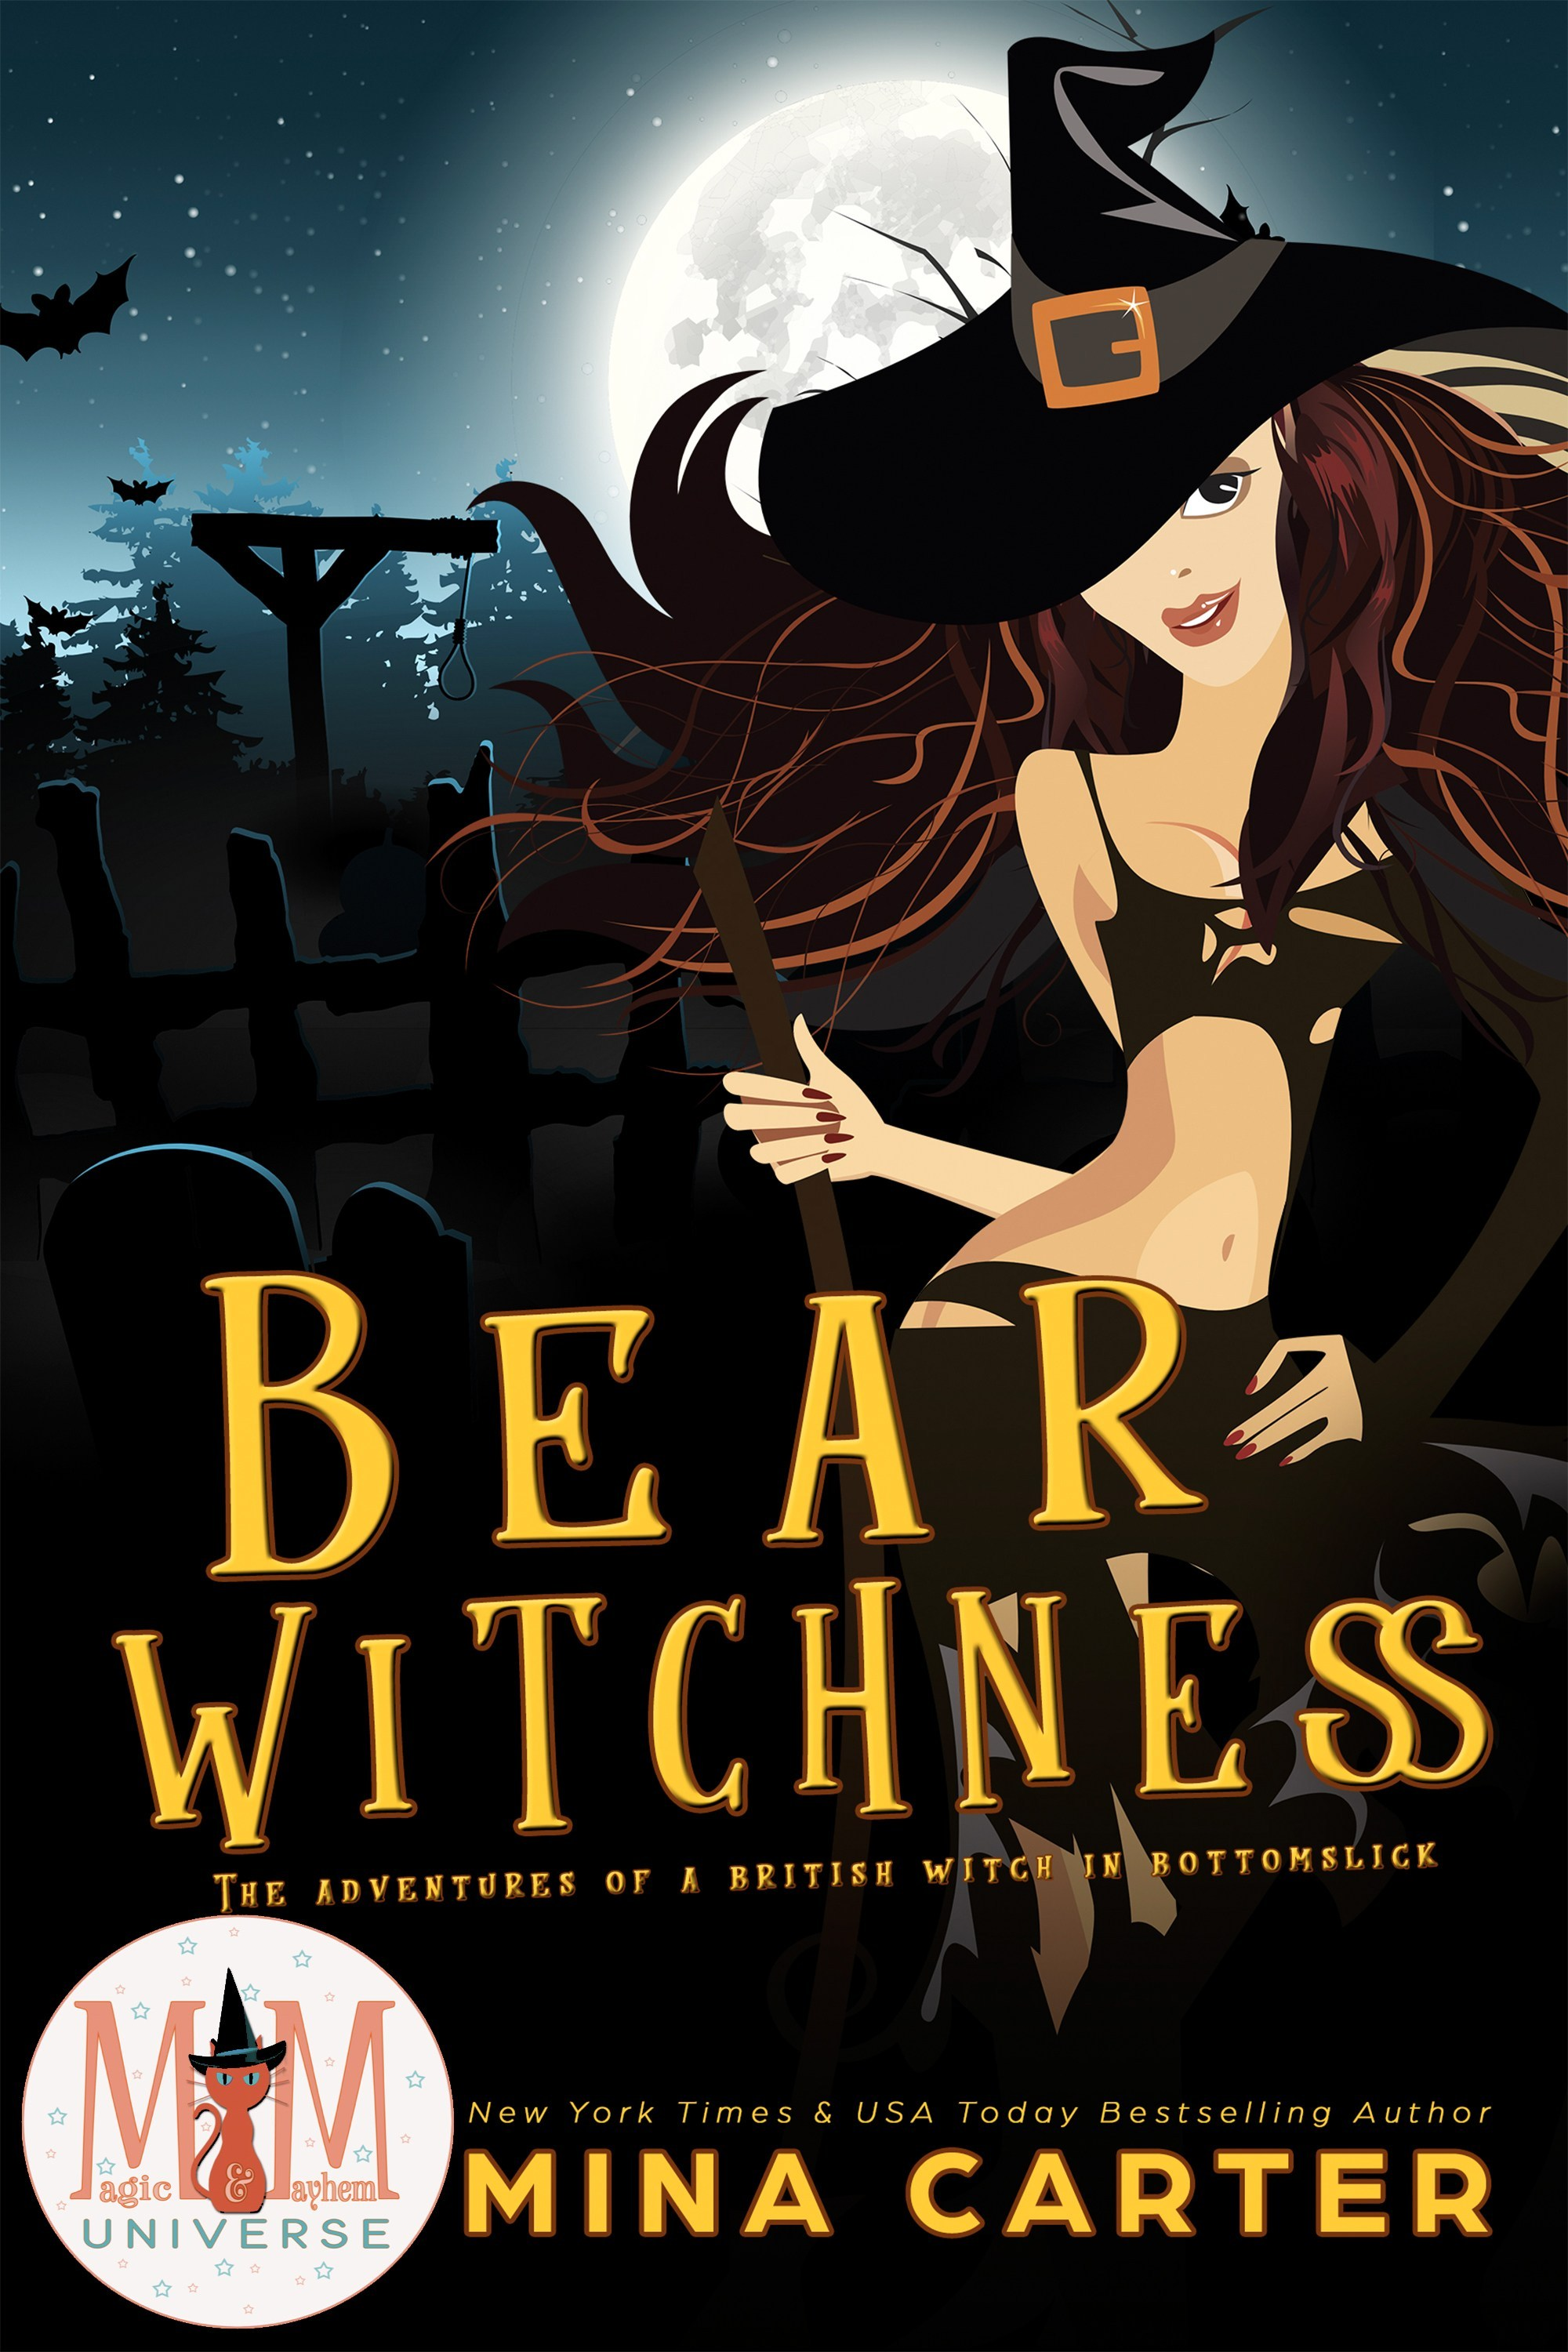 Additional Images: Bear Witchness